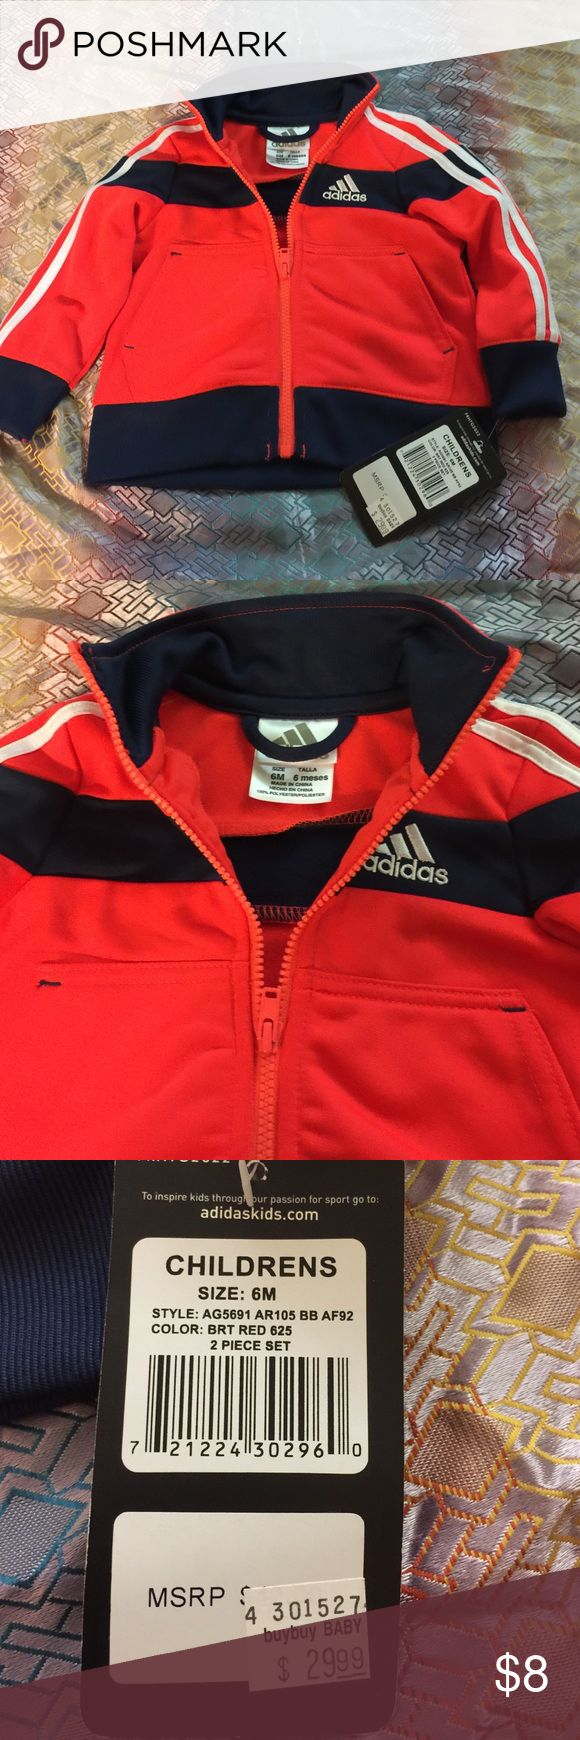 Infant sweat jacket Navy/orange sweat suit jacket for infant Adidas Jackets & Coats